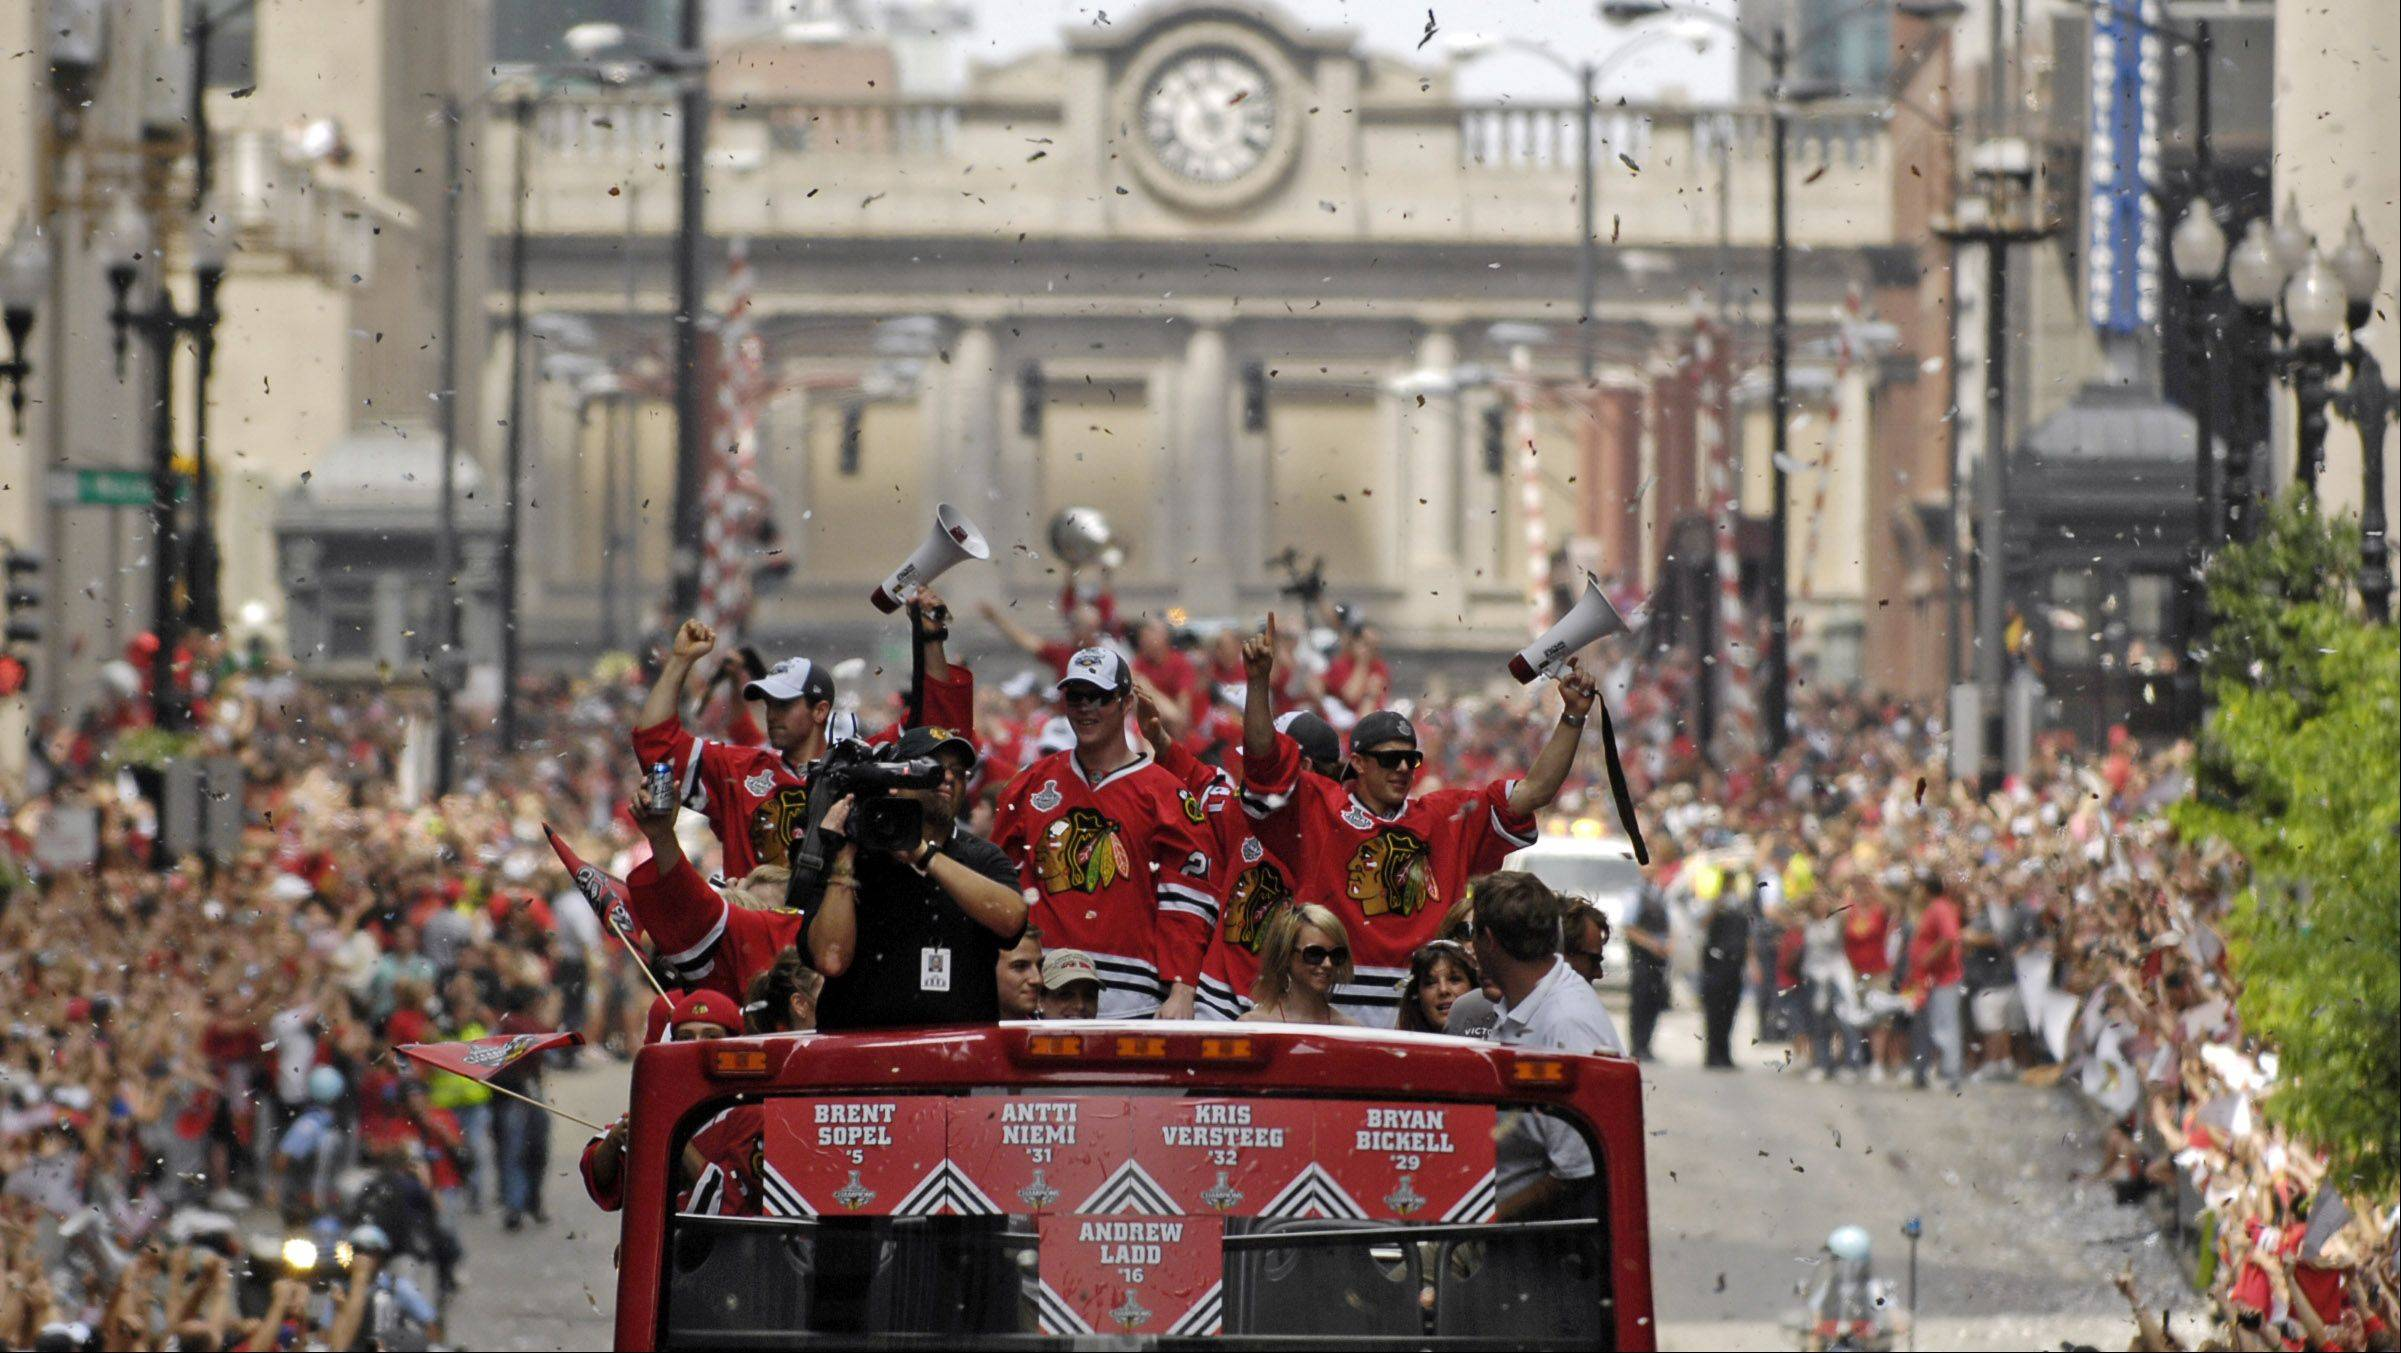 RICK WEST/rwest@dailyherald.com � The Hawks make their way along Washington during Friday's victory parade for the Chicago Blackhawks following their Stanley Cup Finals win over Philadelphia.